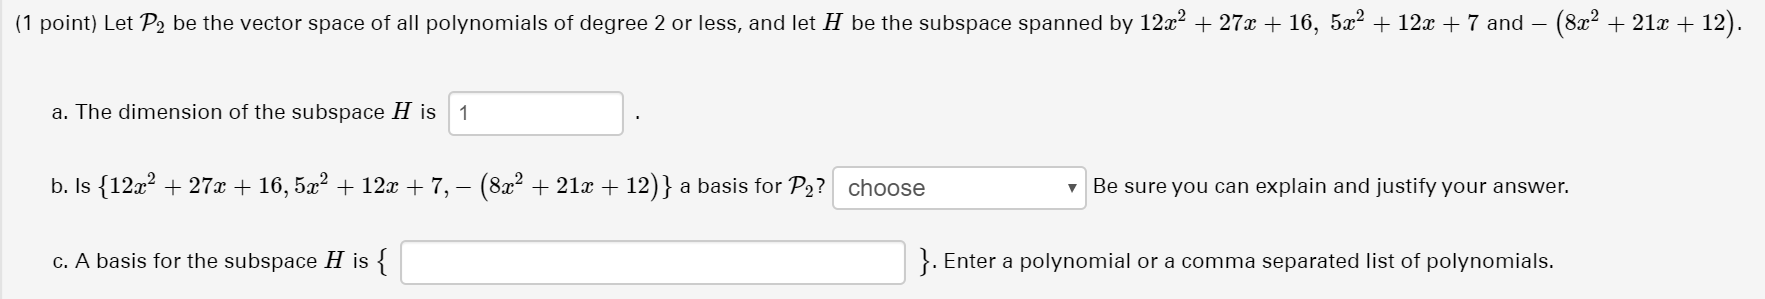 (1 point) Let P2 be the vector space of all polynomials of degree 2 or less, and let H be the subspace spanned by 12x2 + 27x